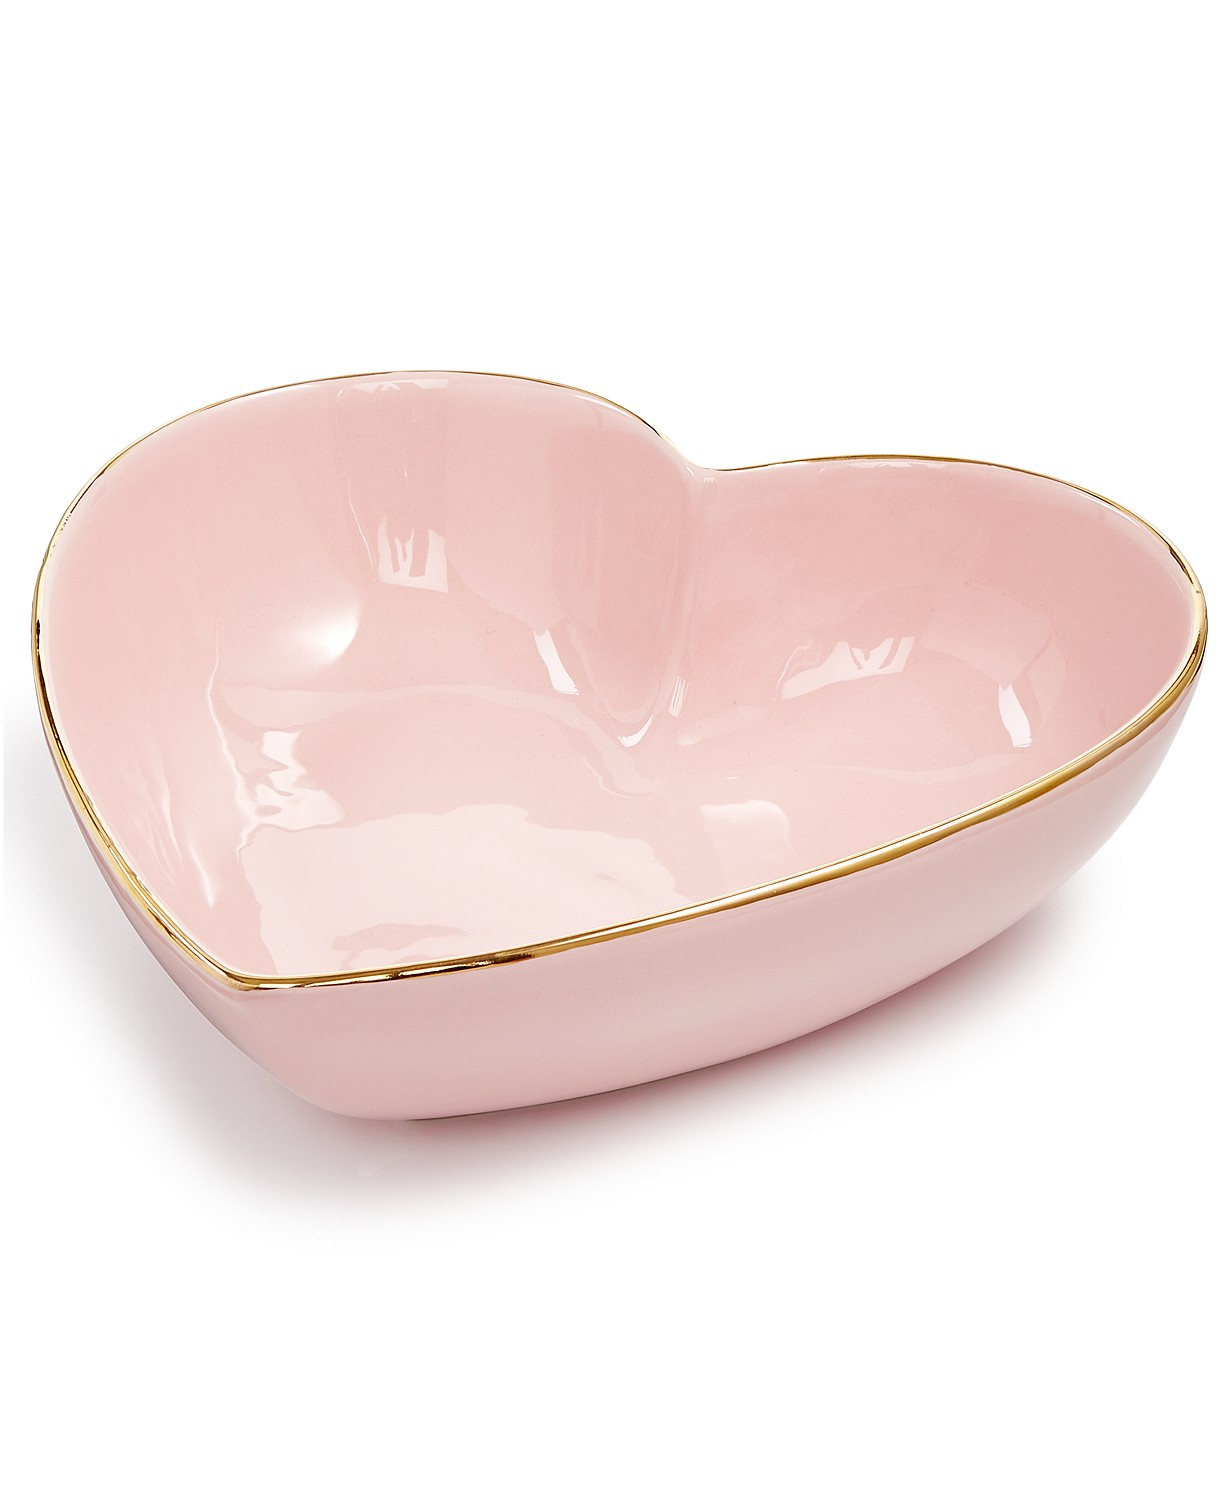 Shopping | Love is in the Air: Our Valentine's Day Shopping List